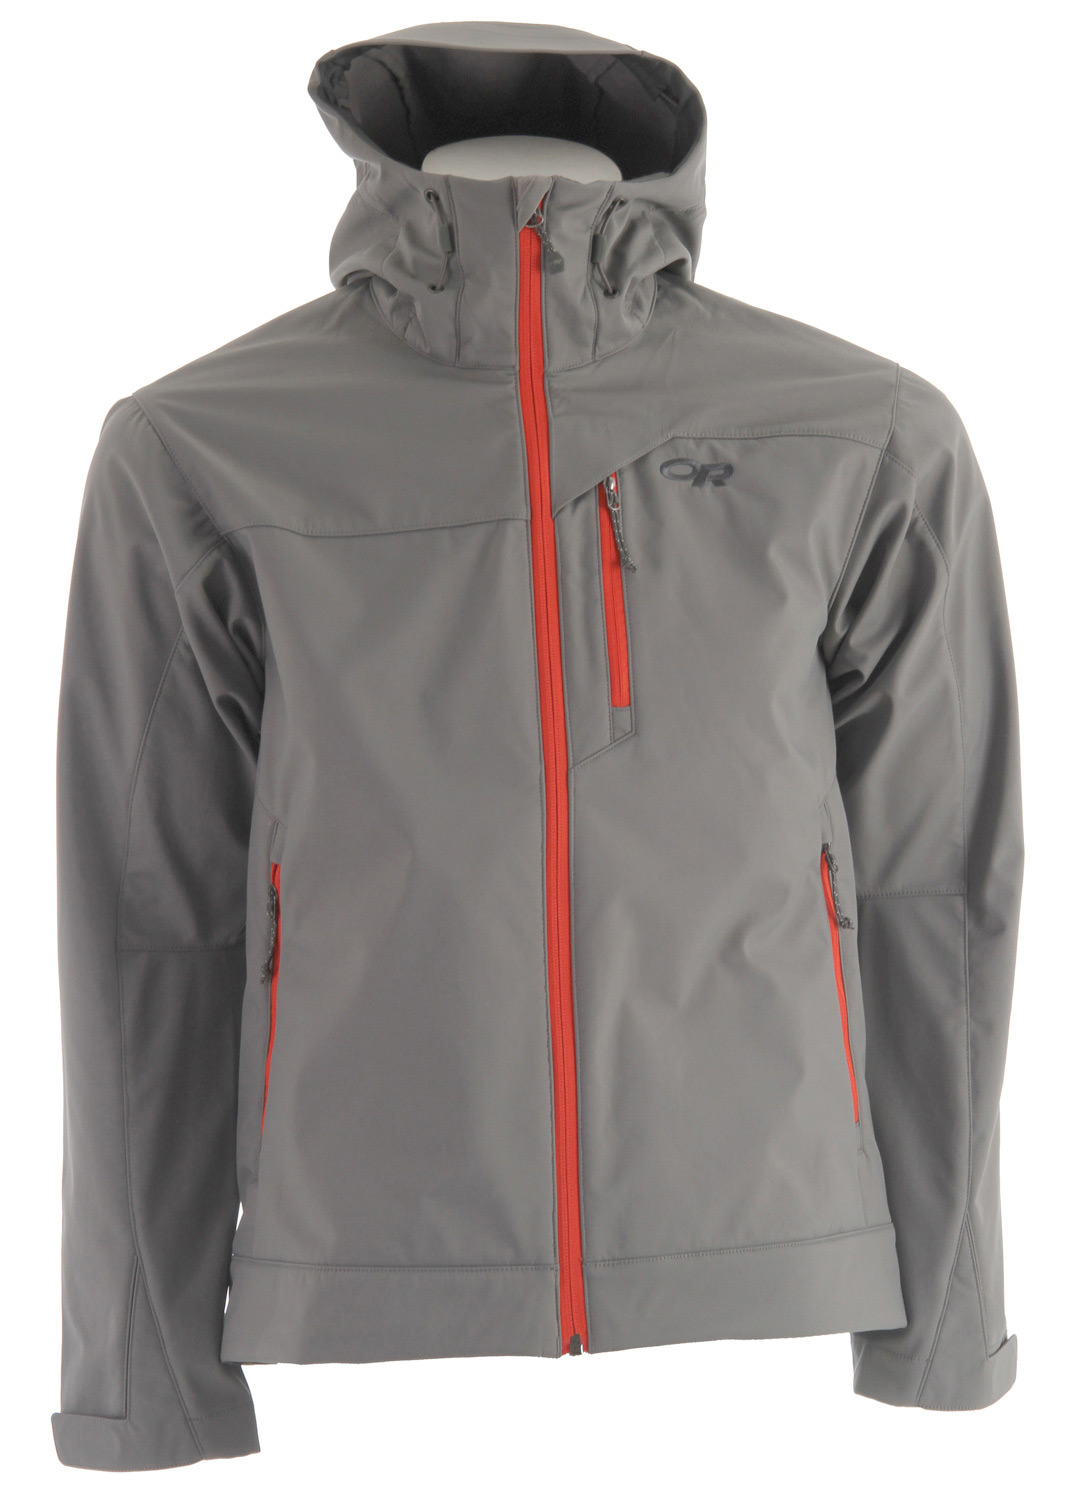 Breathable, soft shell outer layer, the Outdoor Research Transfer Softshell Jacket is for warmer backcountry days or shoulder-season adventures.* Highly water-resistant/breathable bonded soft shell fabric; nylon face, brushed fleece interior * Fully adjustable hood * Brushed tricot collar * Two zippered hand pockets and chest pocket * Hook/loop cuff closures * Dual drawcord hem adjustments - $71.95